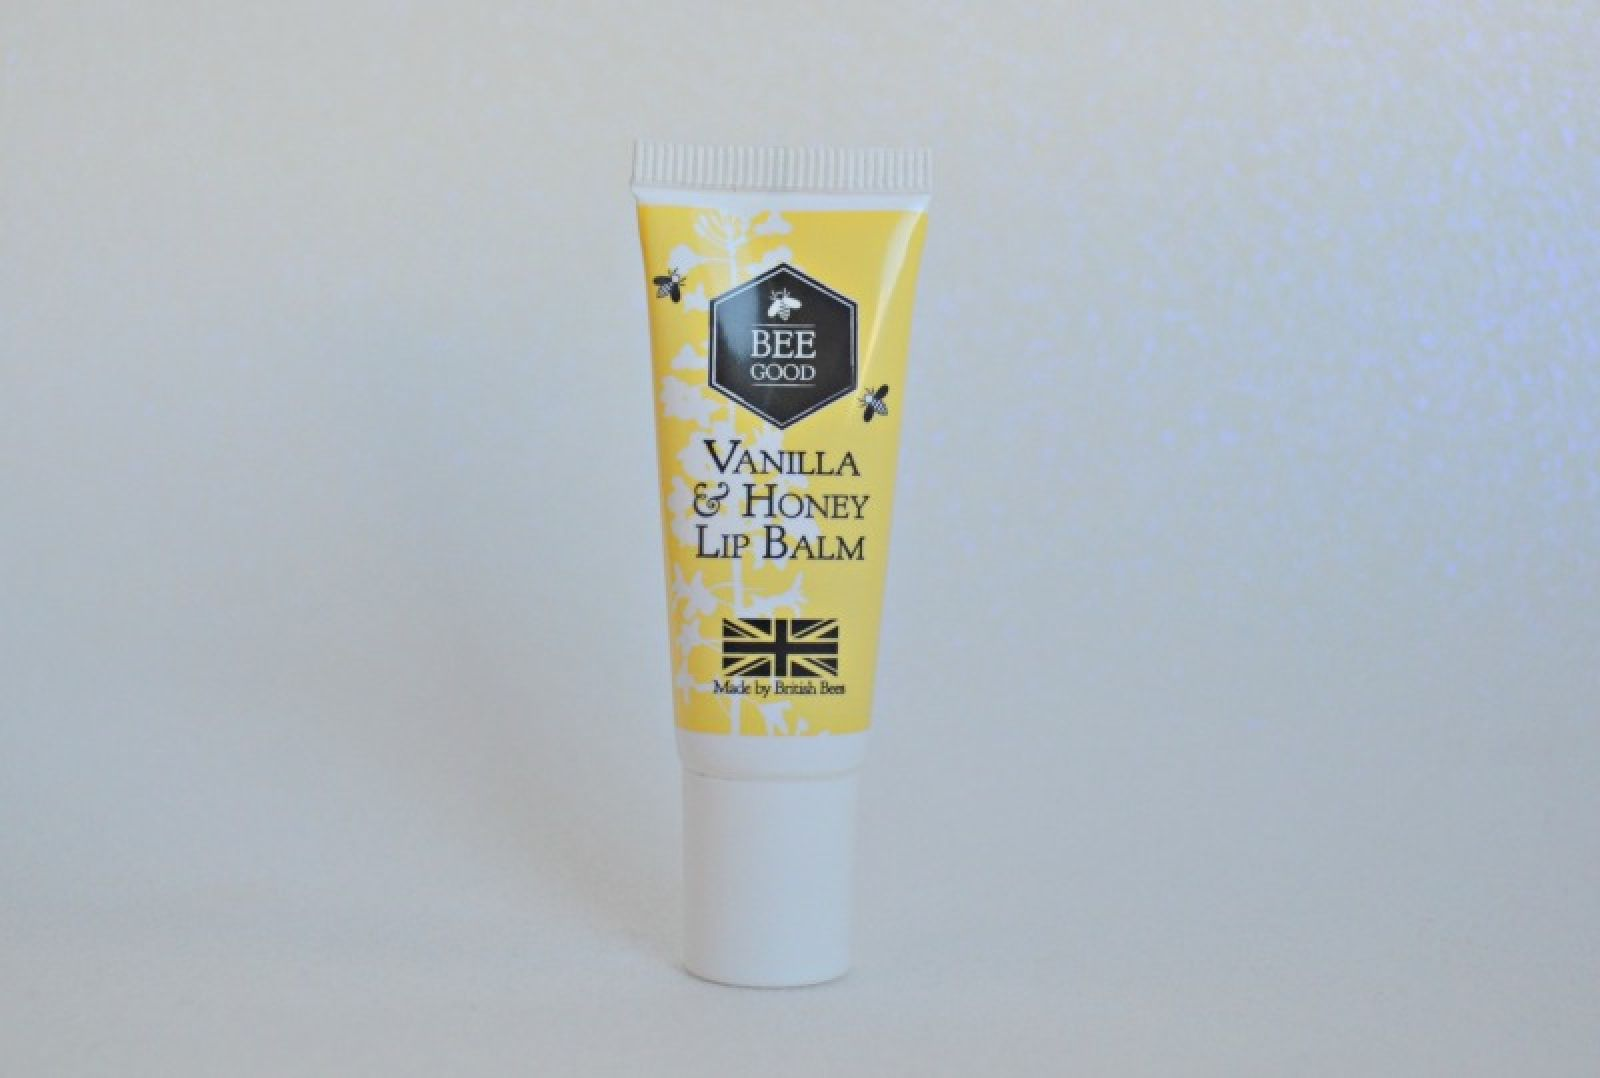 Bee Good Vanilla and Honey Lip Balm